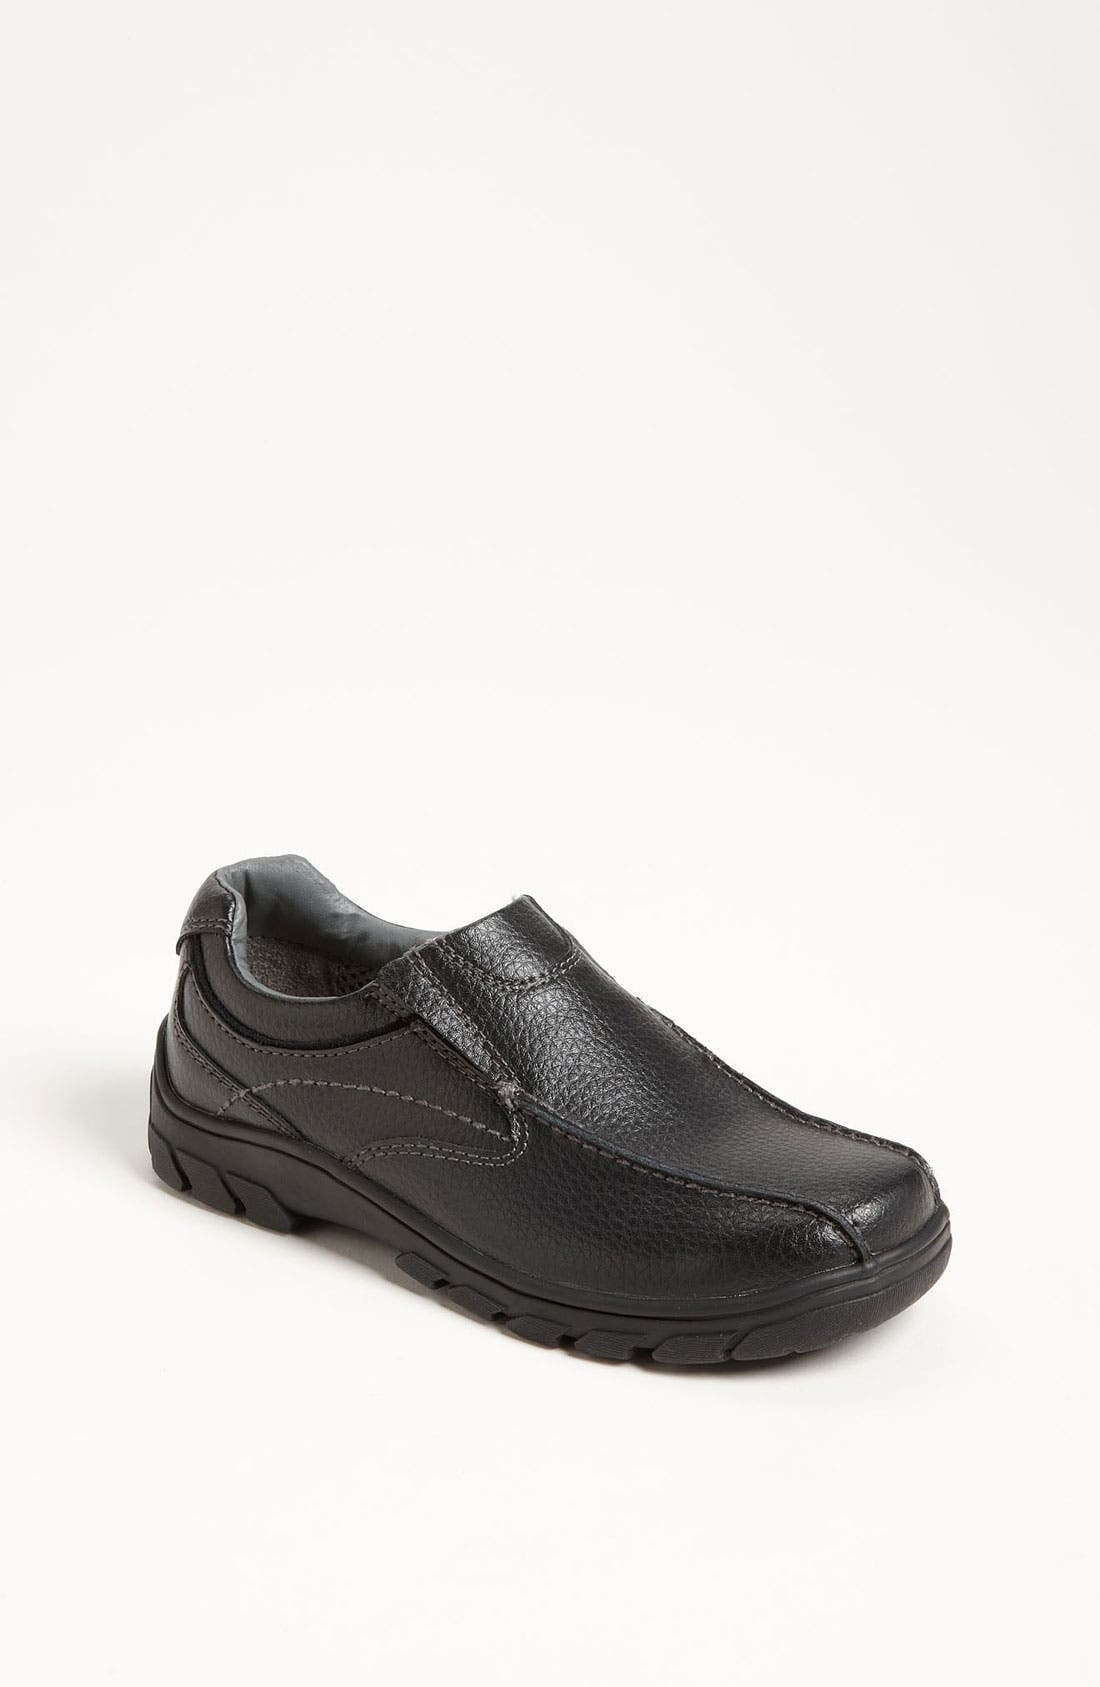 Alternate Image 1 Selected - Florsheim 'Getaway - Bike' Slip-On (Toddler, Little Kid & Big Kid)